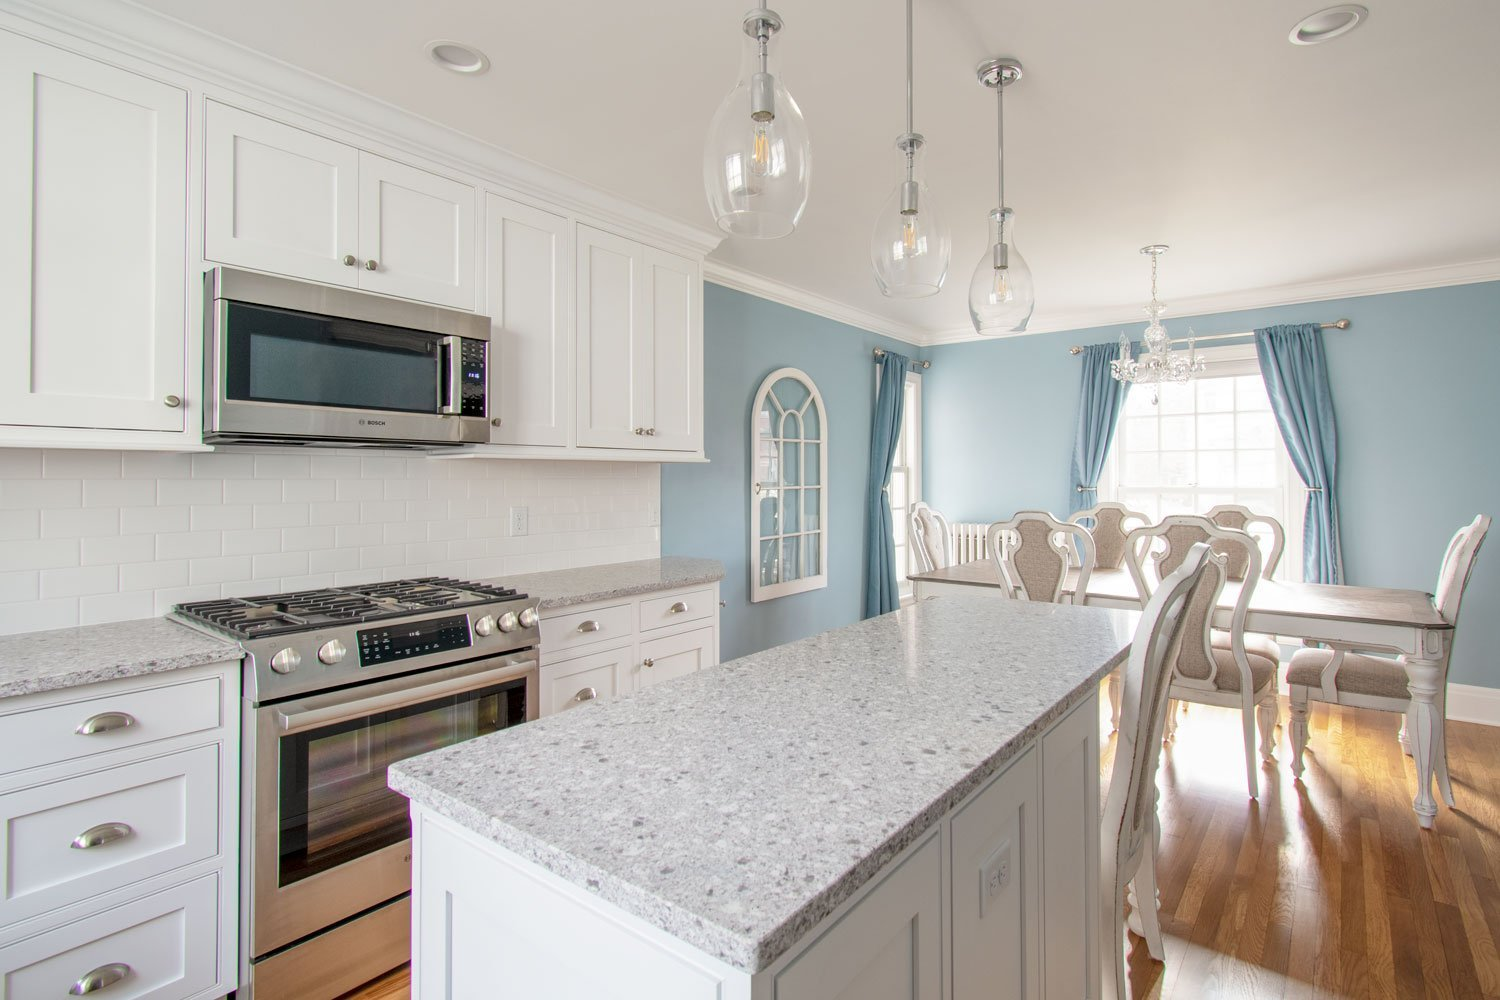 Waukesha kitchen historic remodel